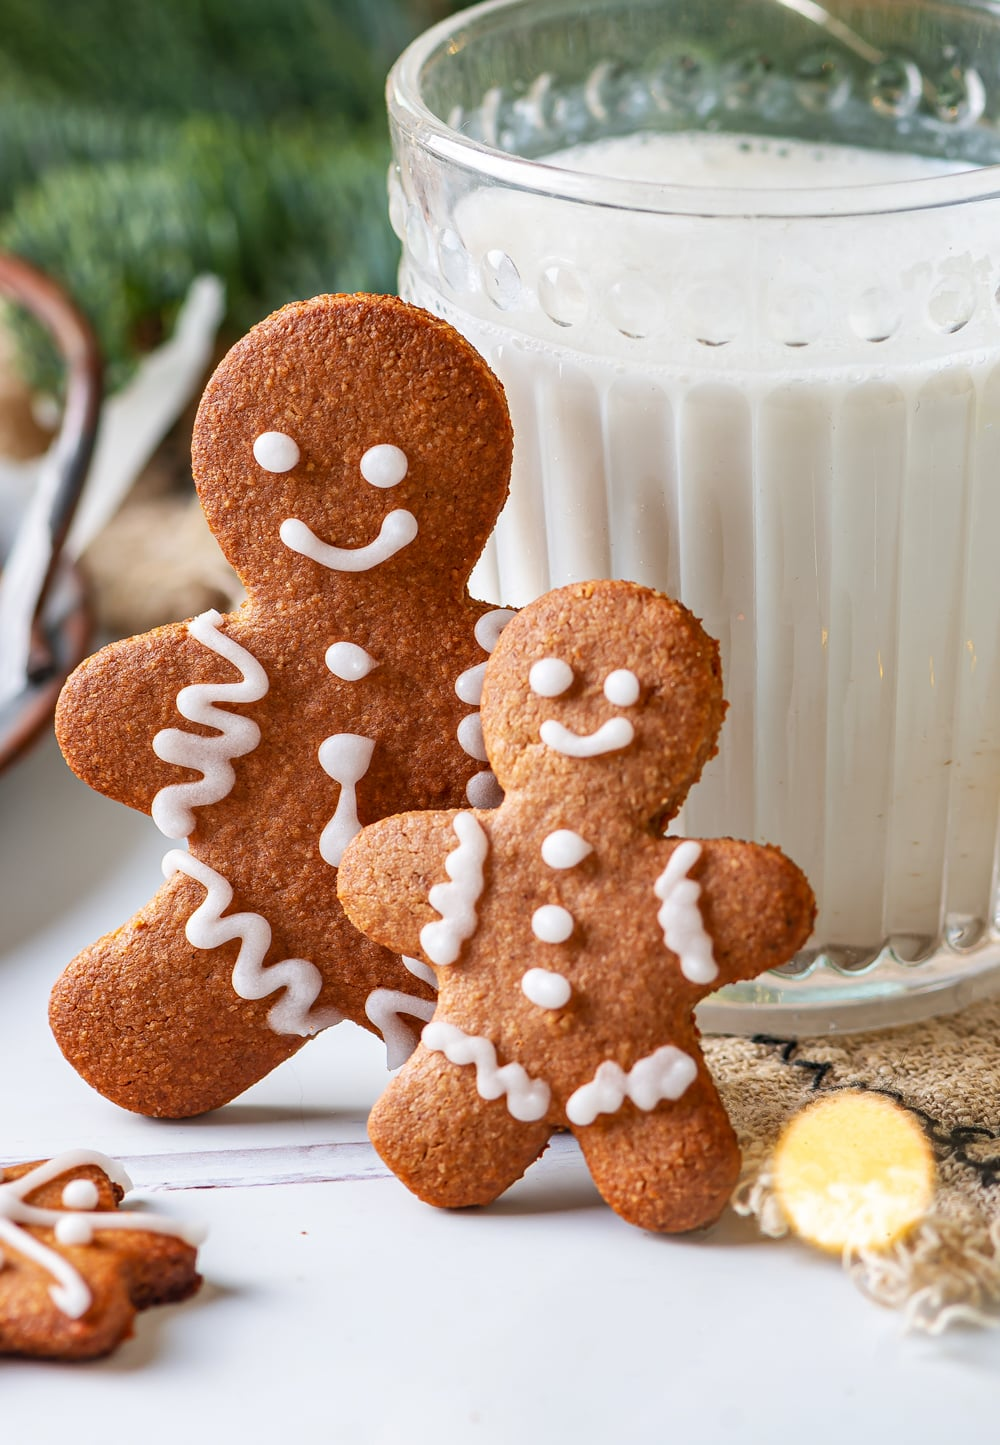 A large gingerbread man cookie and a small one leaning against a glass of milk.